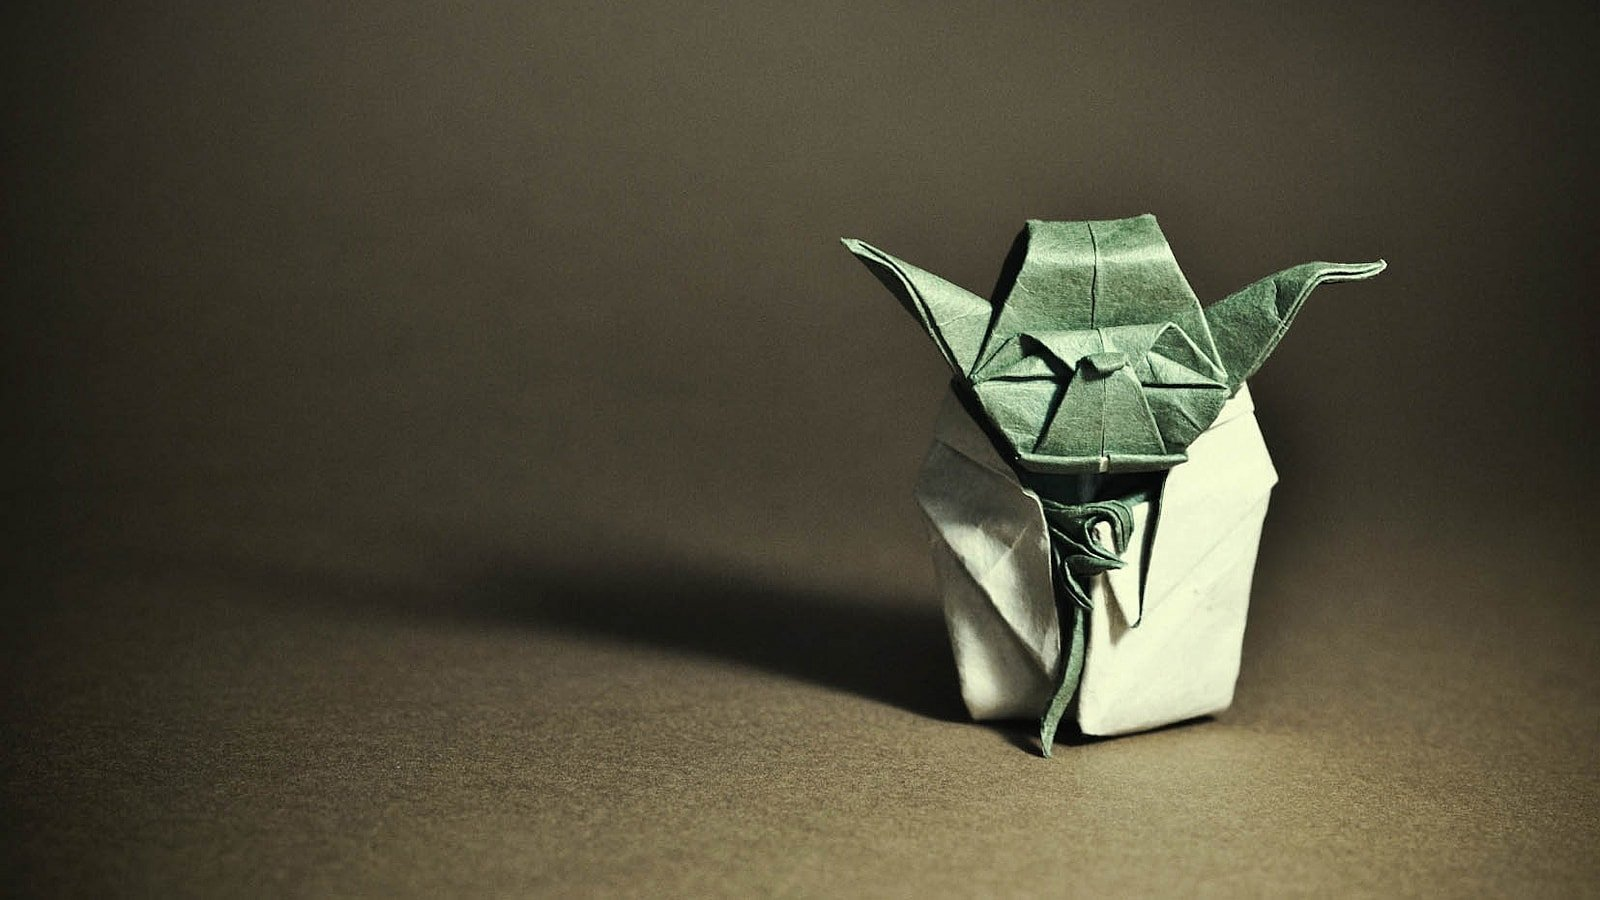 Star Wars Origami TIE Fighter - Yakomoga Origami tutorial - YouTube | 900x1600